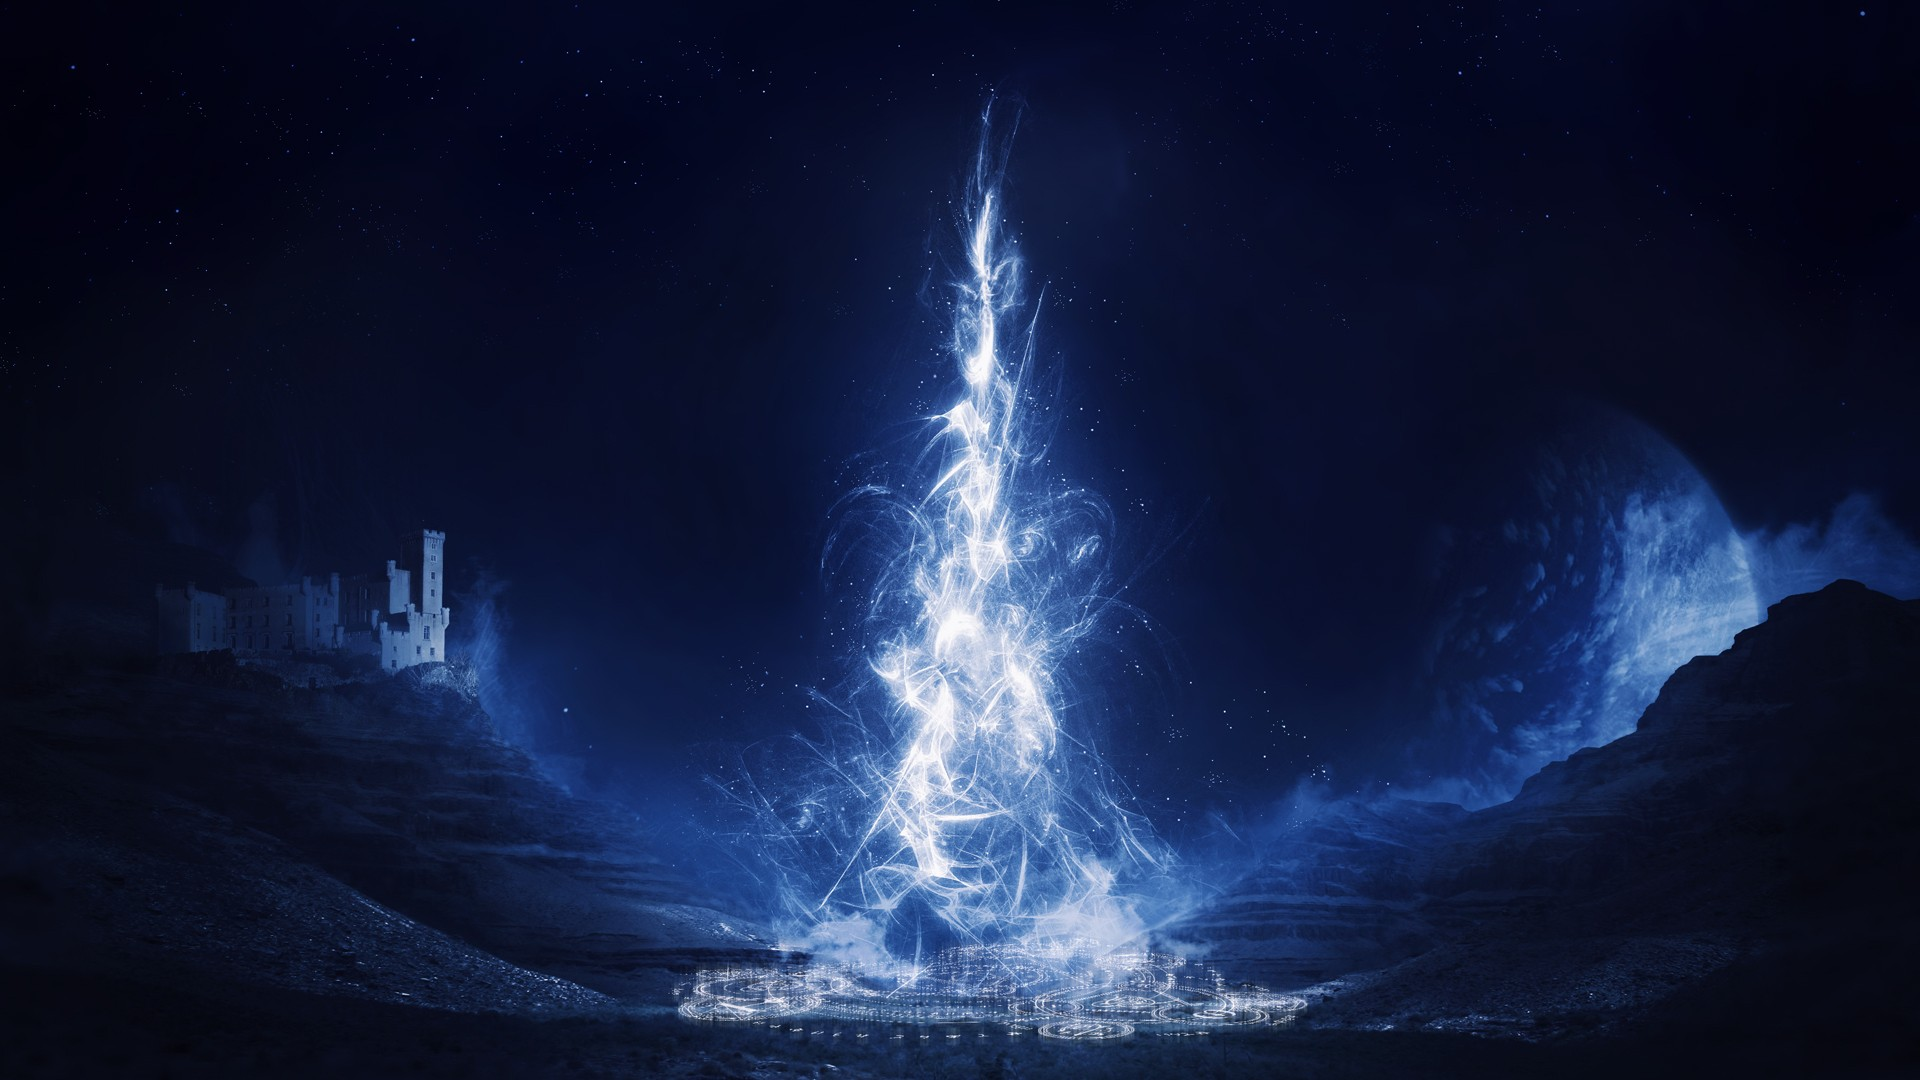 Lineage 2 Wallpaper Hd Magical Wallpaper Hd 35 Wallpapers Adorable Wallpapers